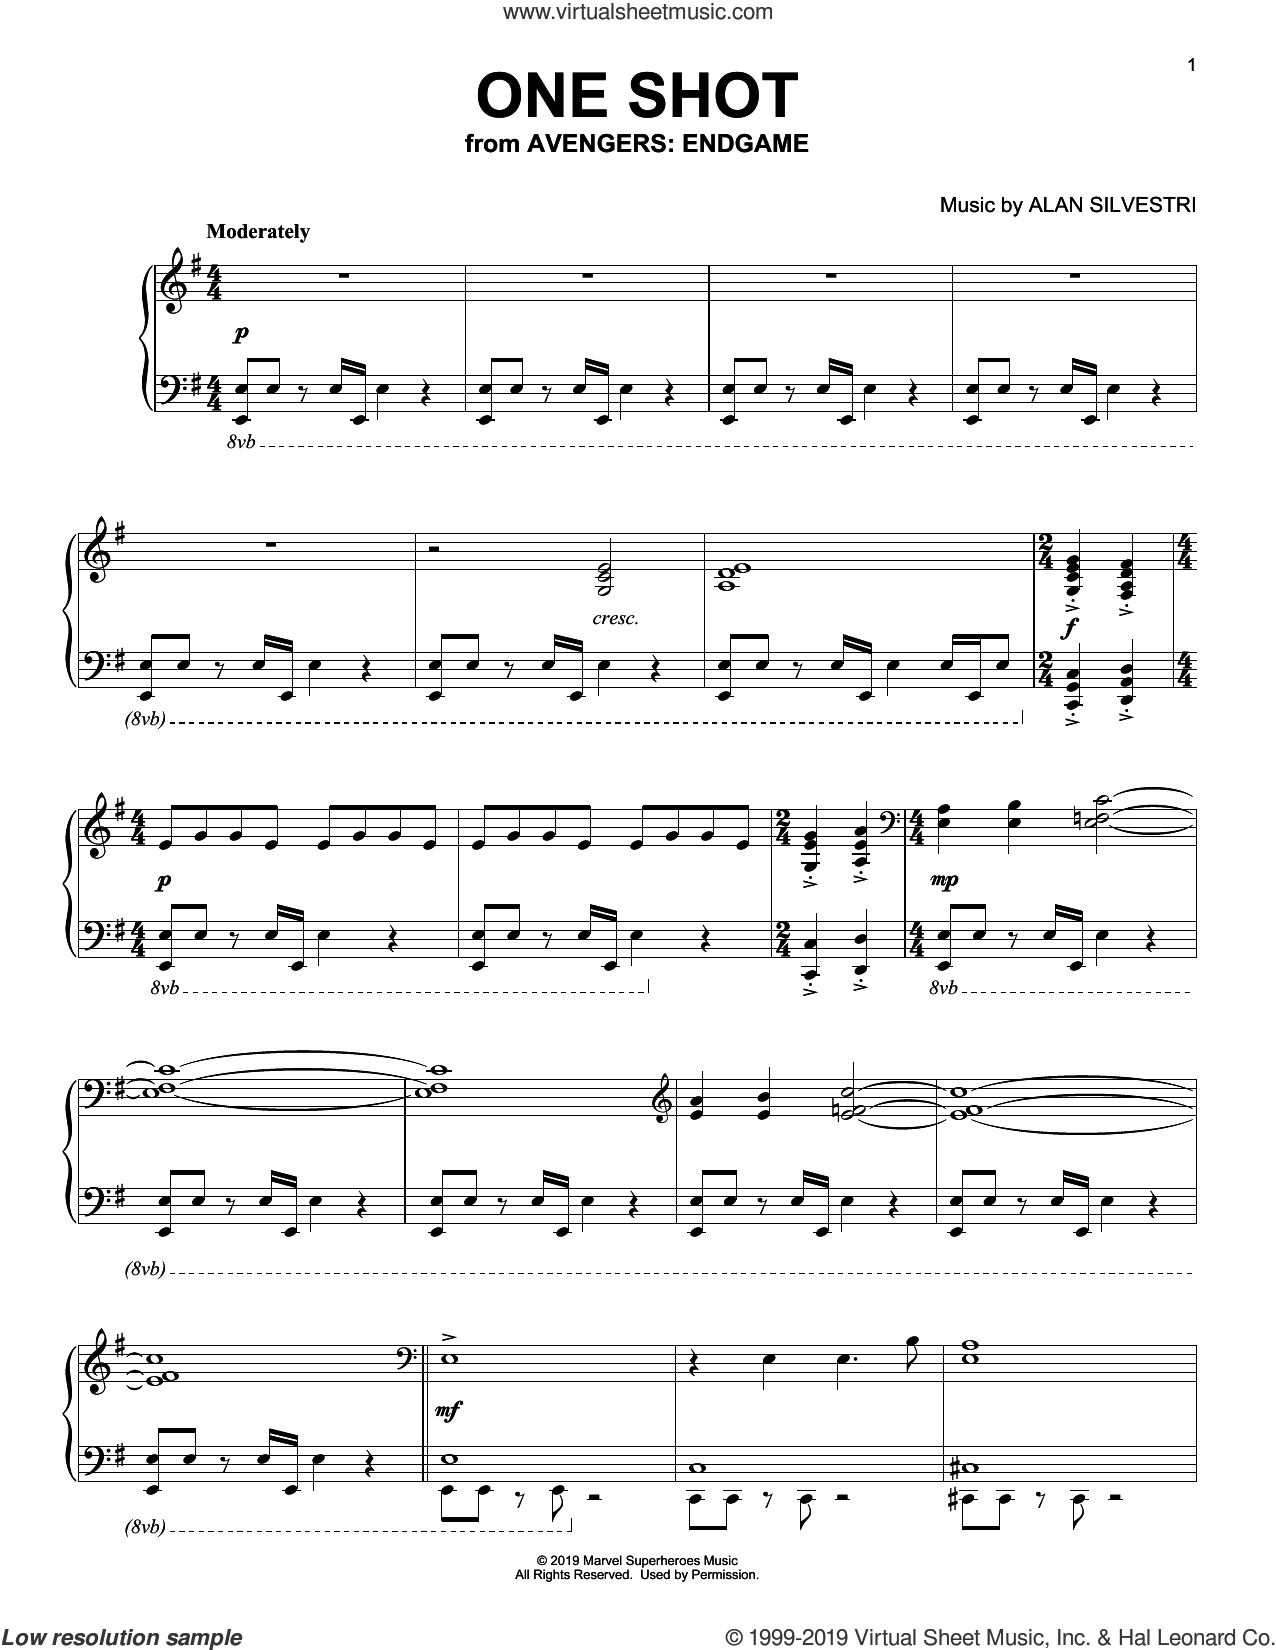 One Shot (from Avengers: Endgame) sheet music for piano solo by Alan Silvestri, intermediate skill level